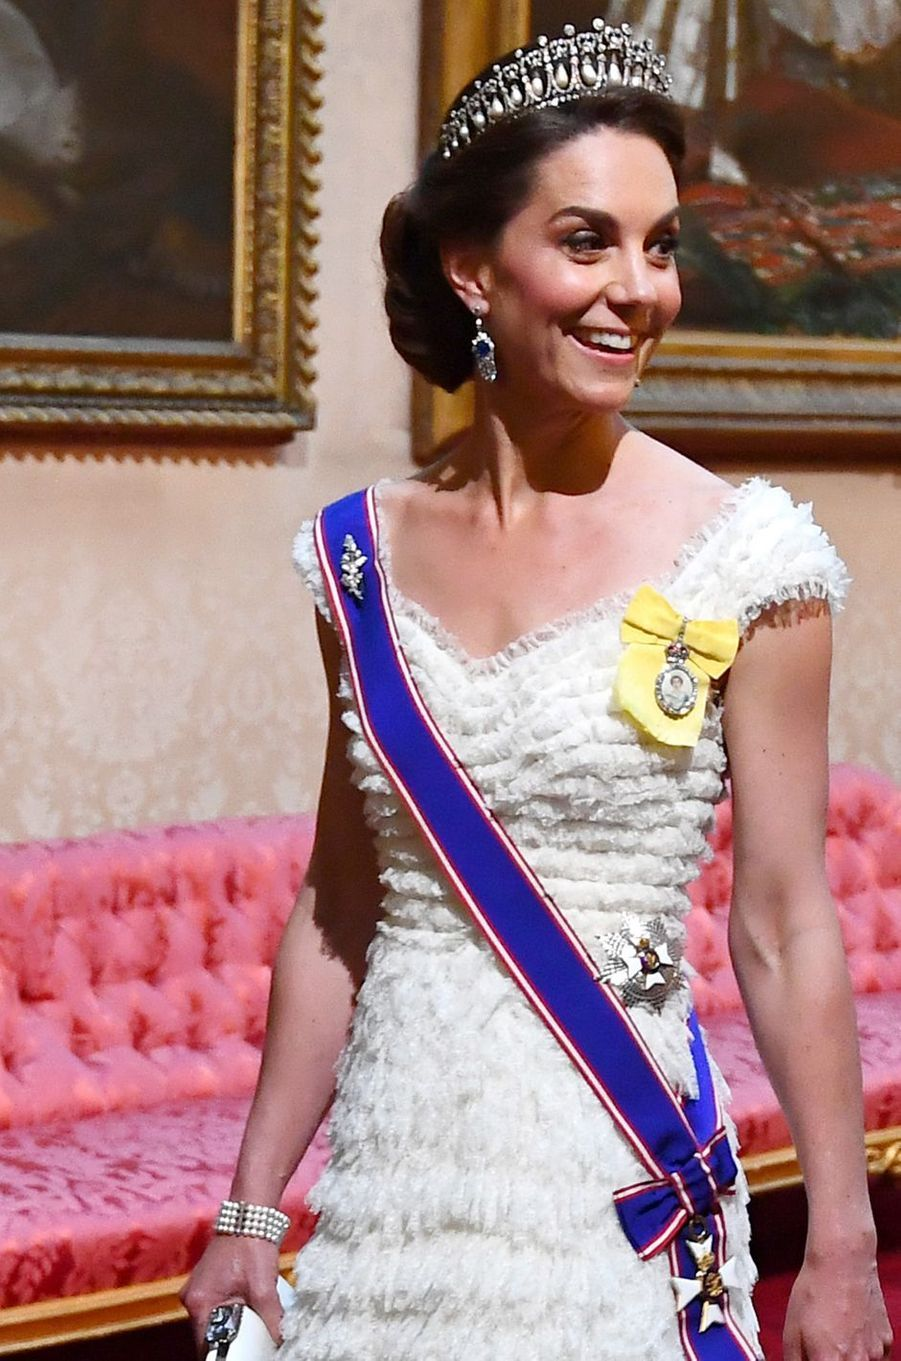 Détail de la robe de Kate Middleton, la duchesse de Cambridge, à Londres le 3 juin 2019